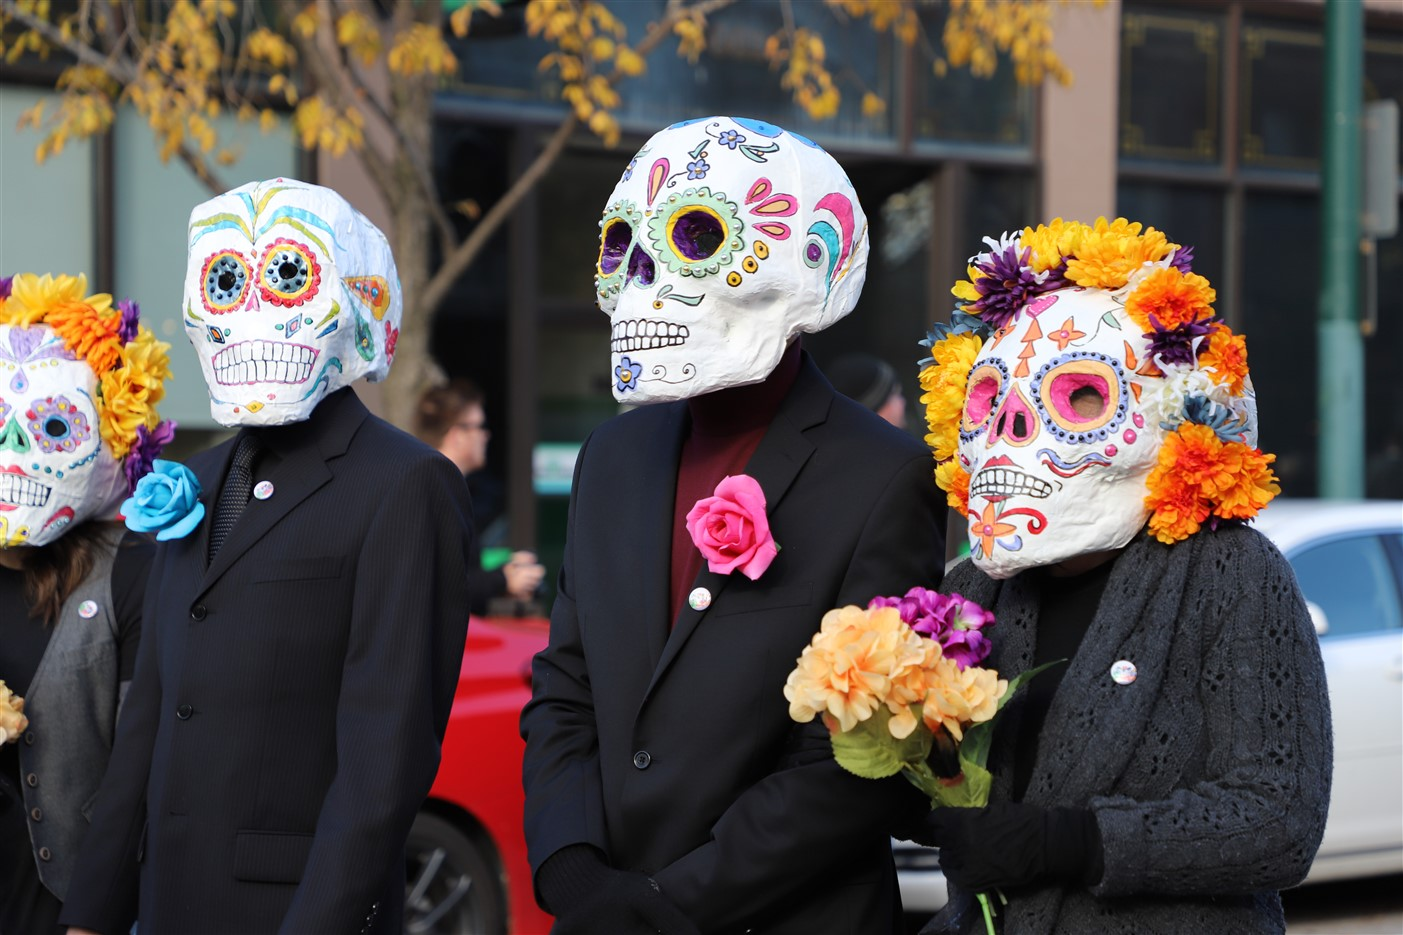 2018 11 03 224 Cleveland Day of the Dead Parade.jpg